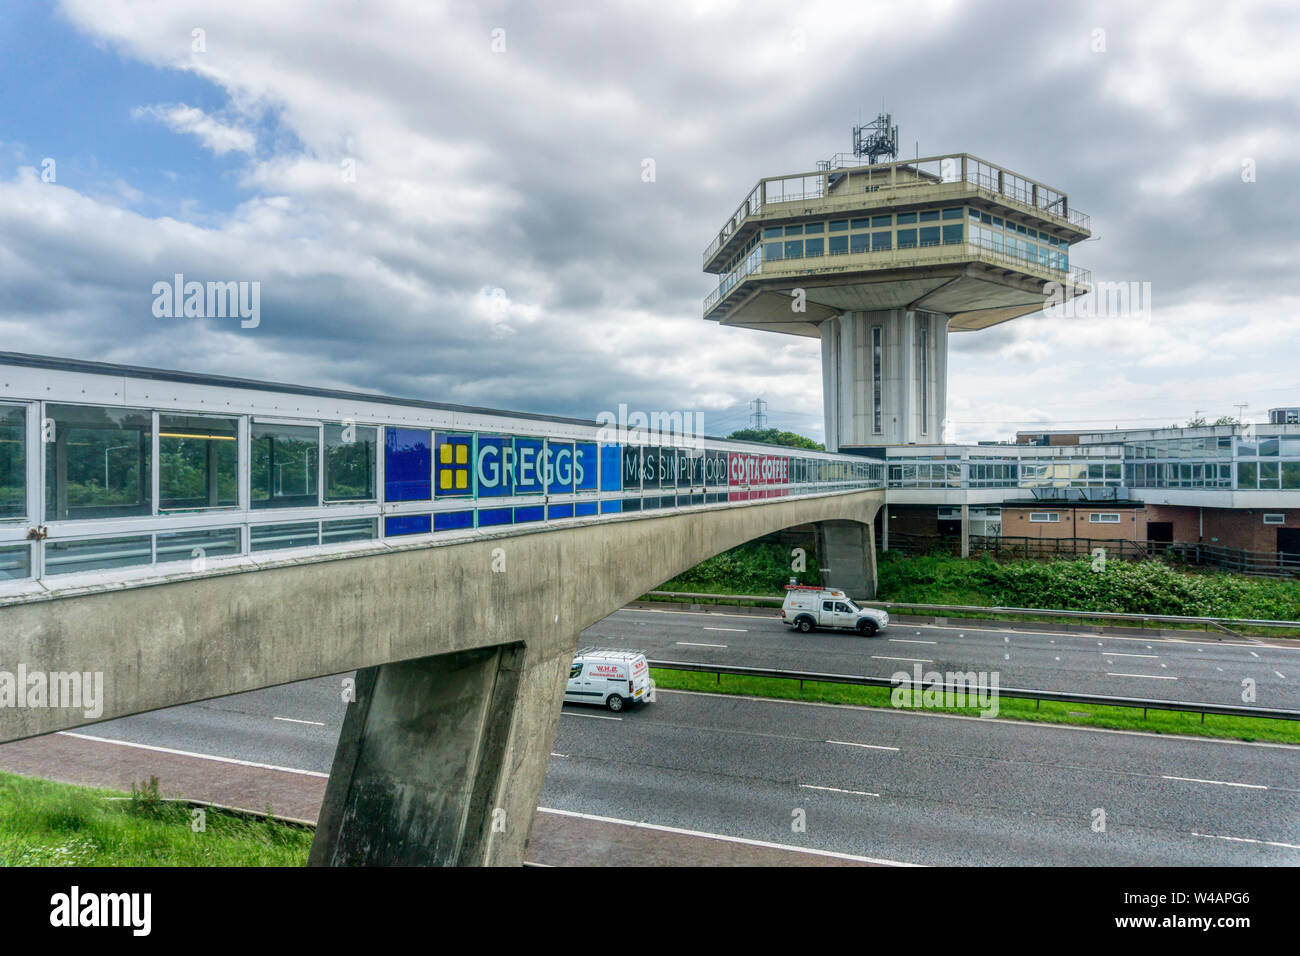 Brutalist architecture of the all weather enclosed bridge across the M6 motorway and the Pennine Tower of Lancaster Forton Services opened in 1965. Stock Photo